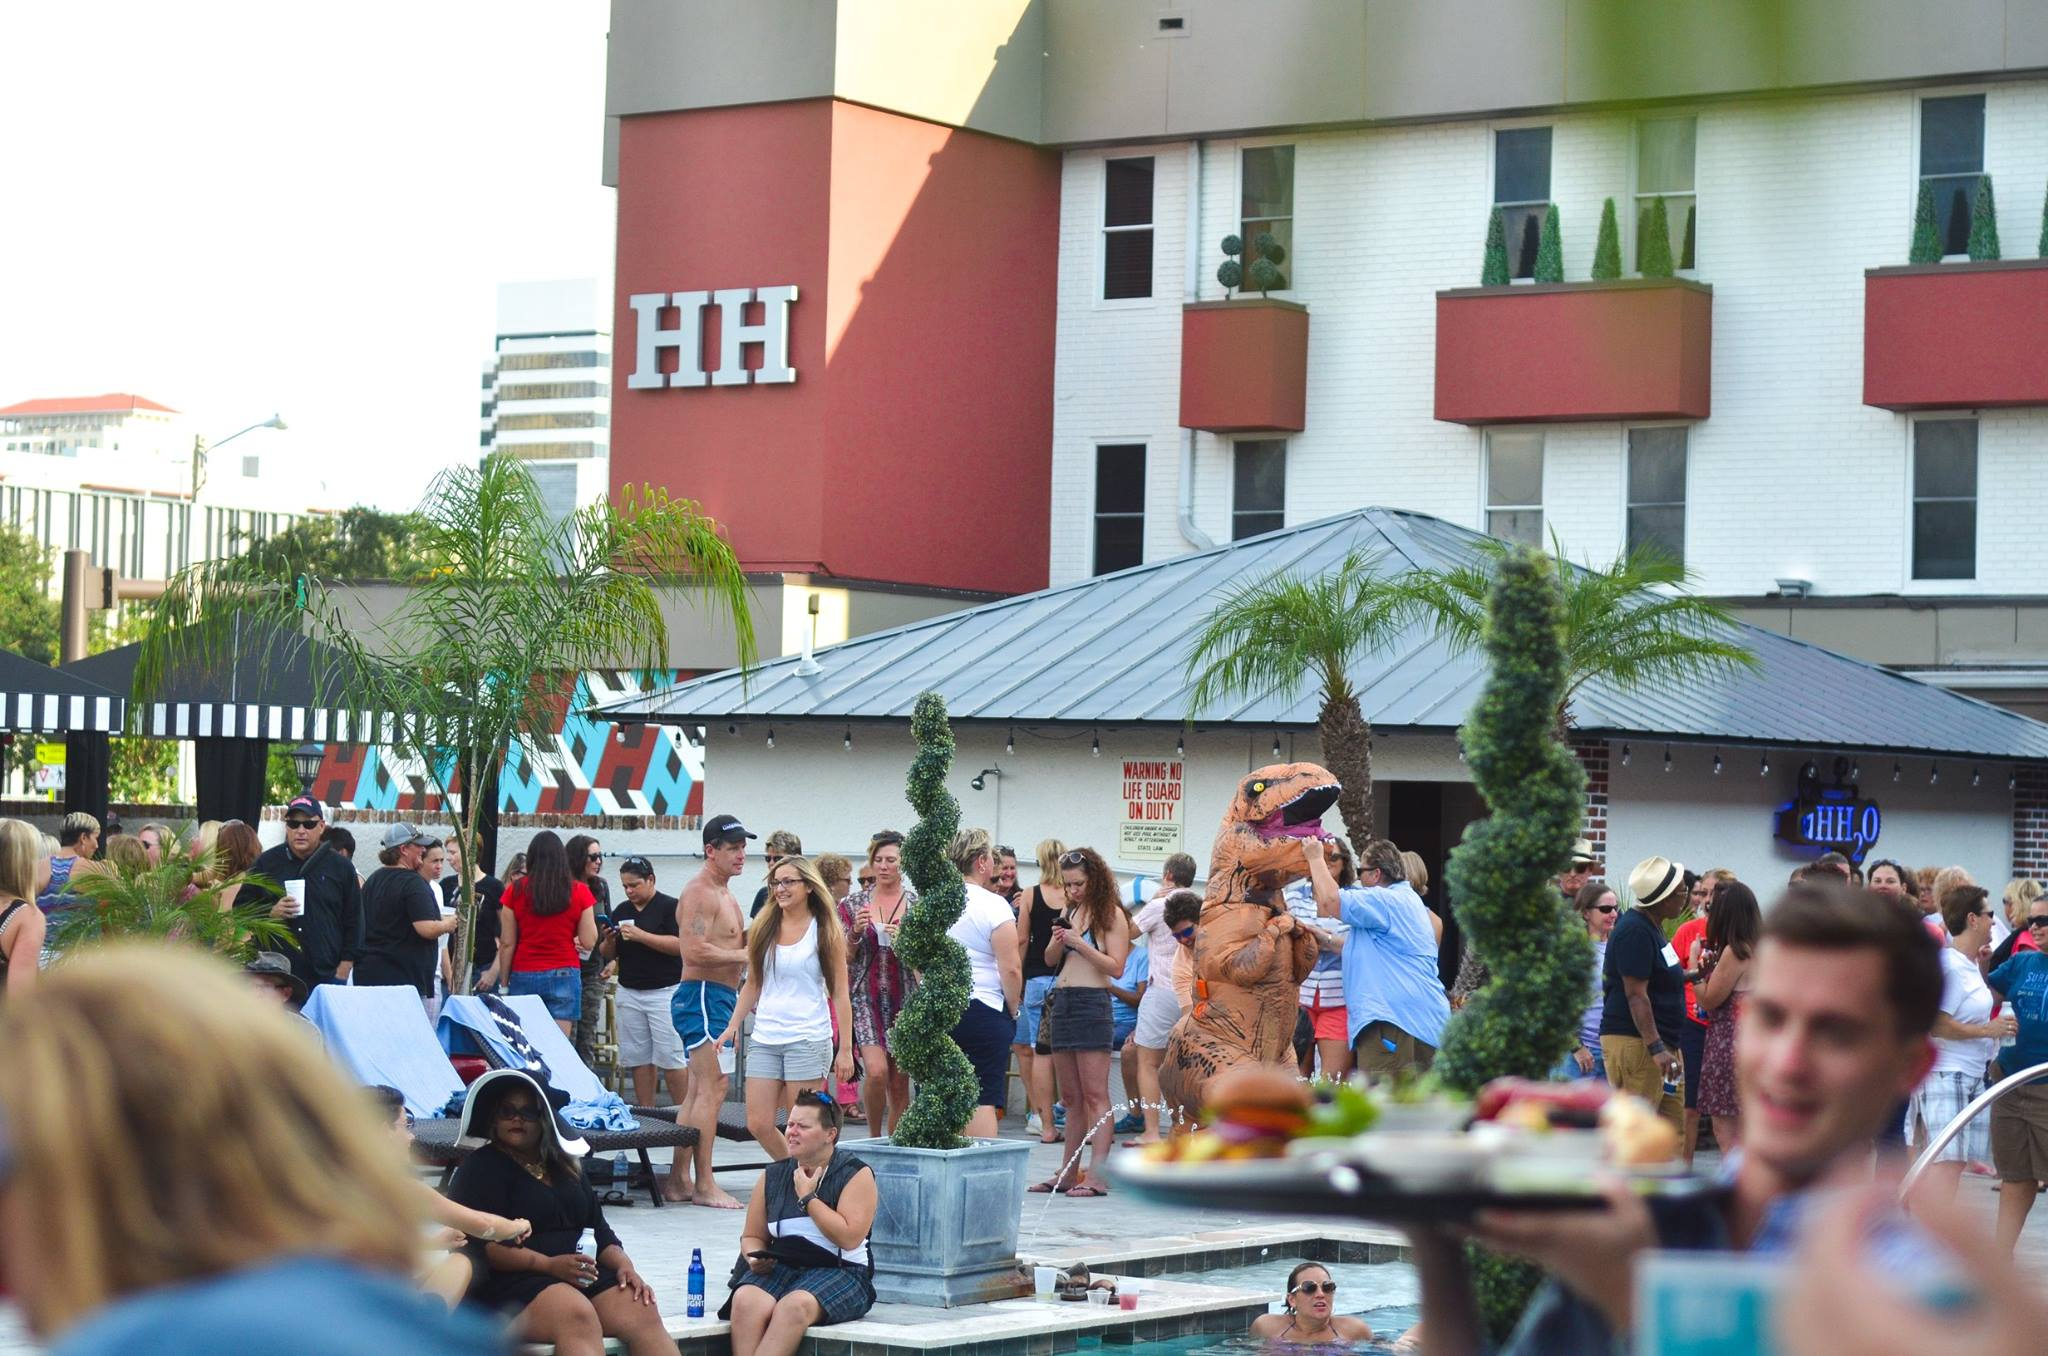 Crowd of people hanging out in the pool area